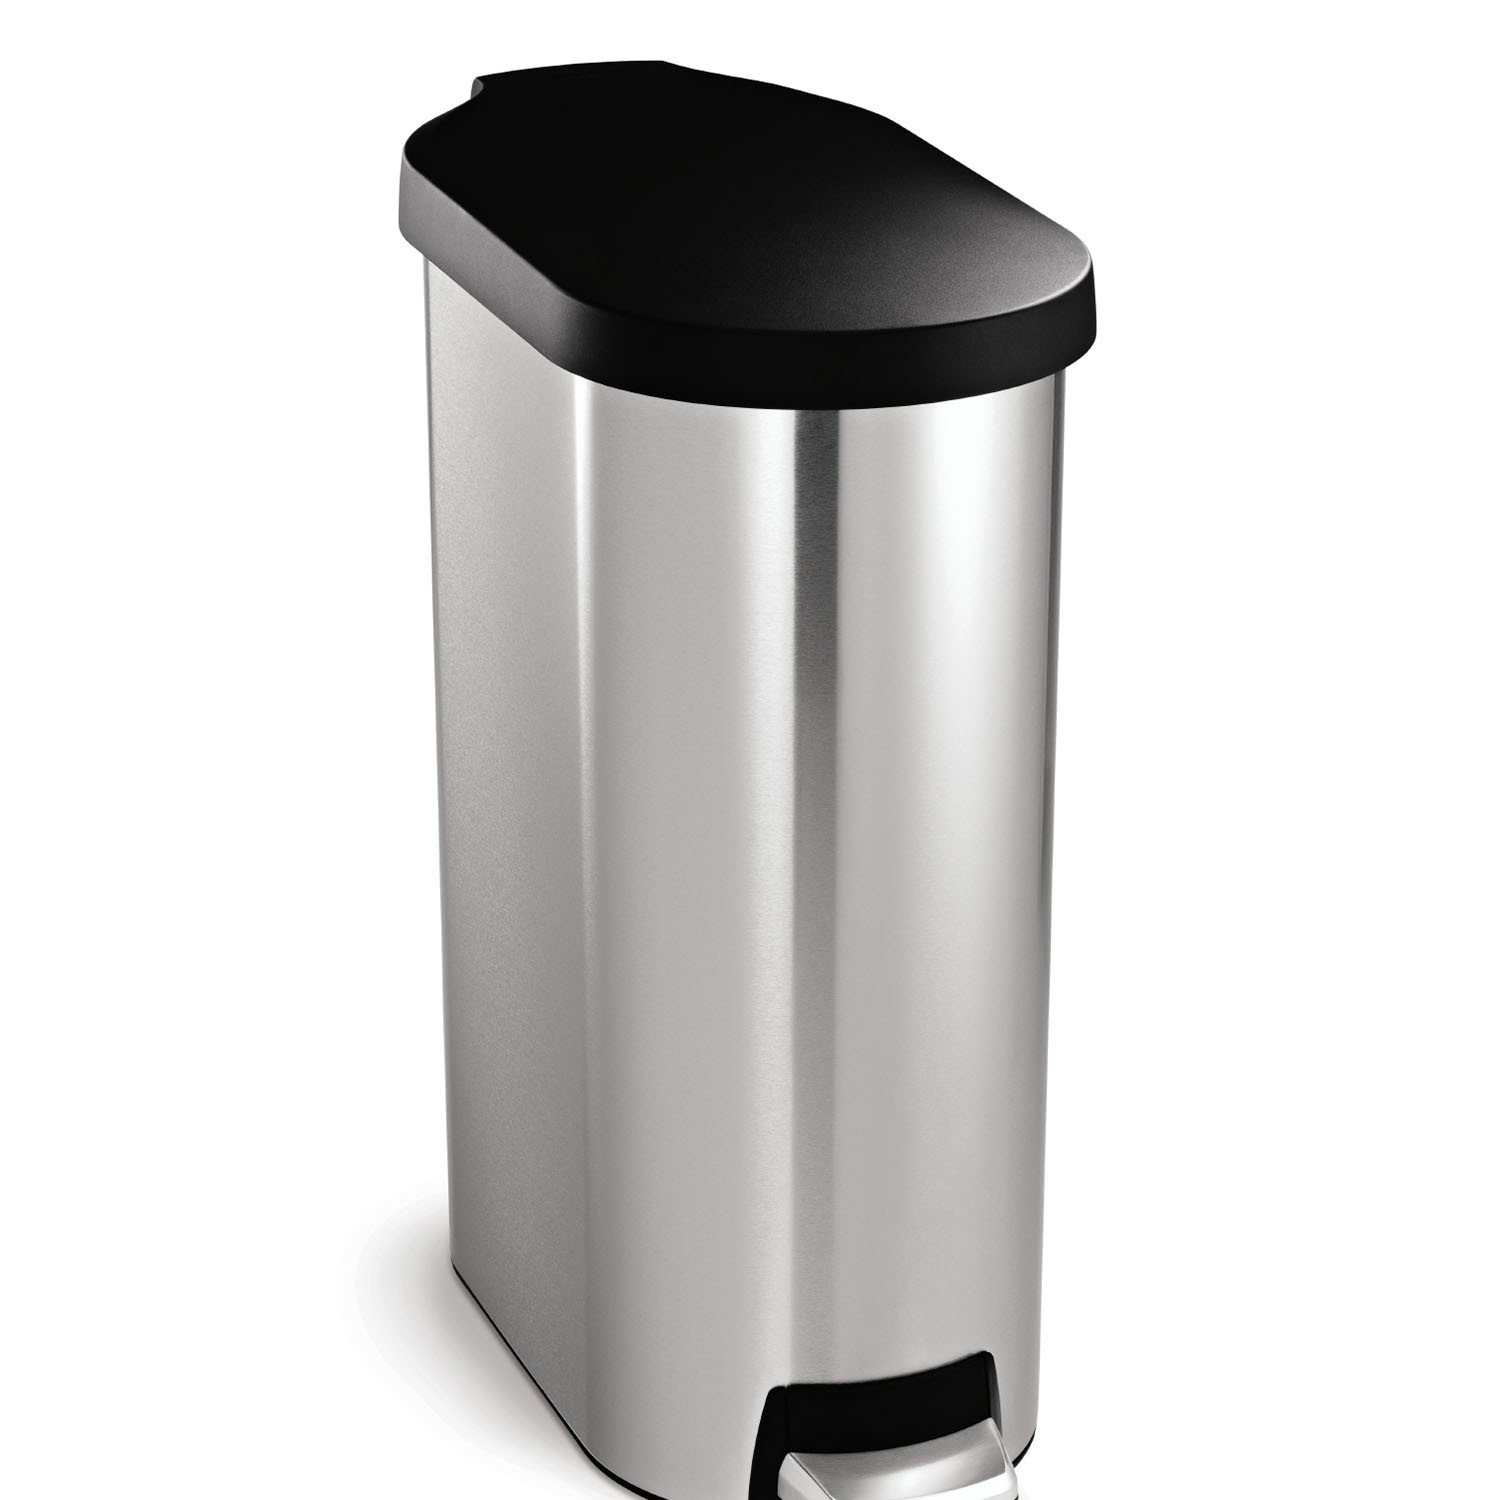 Tall Narrow Trash Can Simplehuman Slim Pedal Bin 45 Litre Brushed Stainless Stee